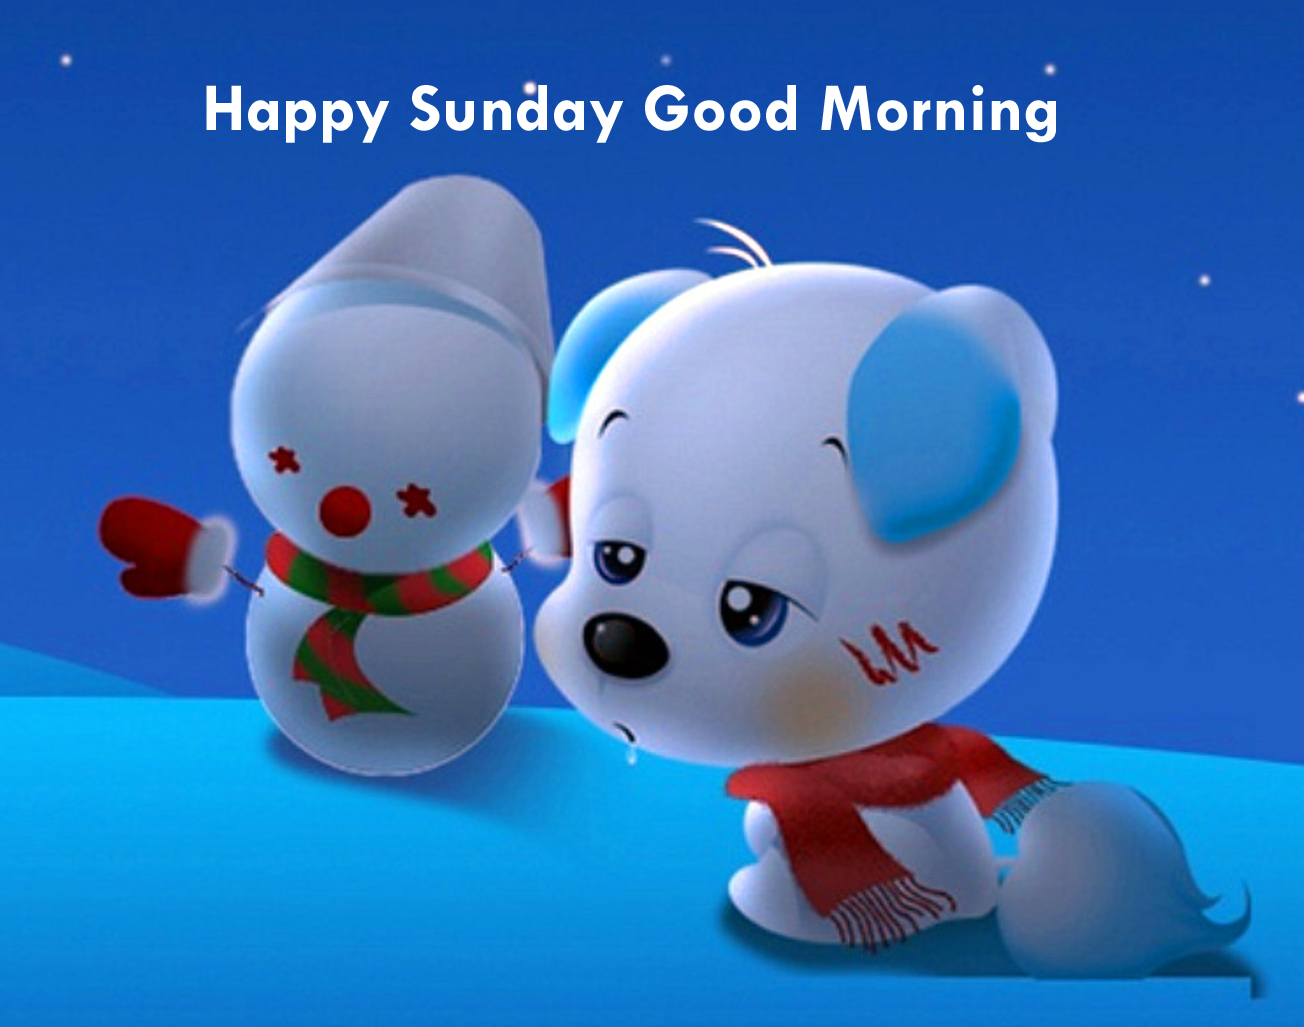 Good Morning Cute Sunday Images Labzada Wallpaper